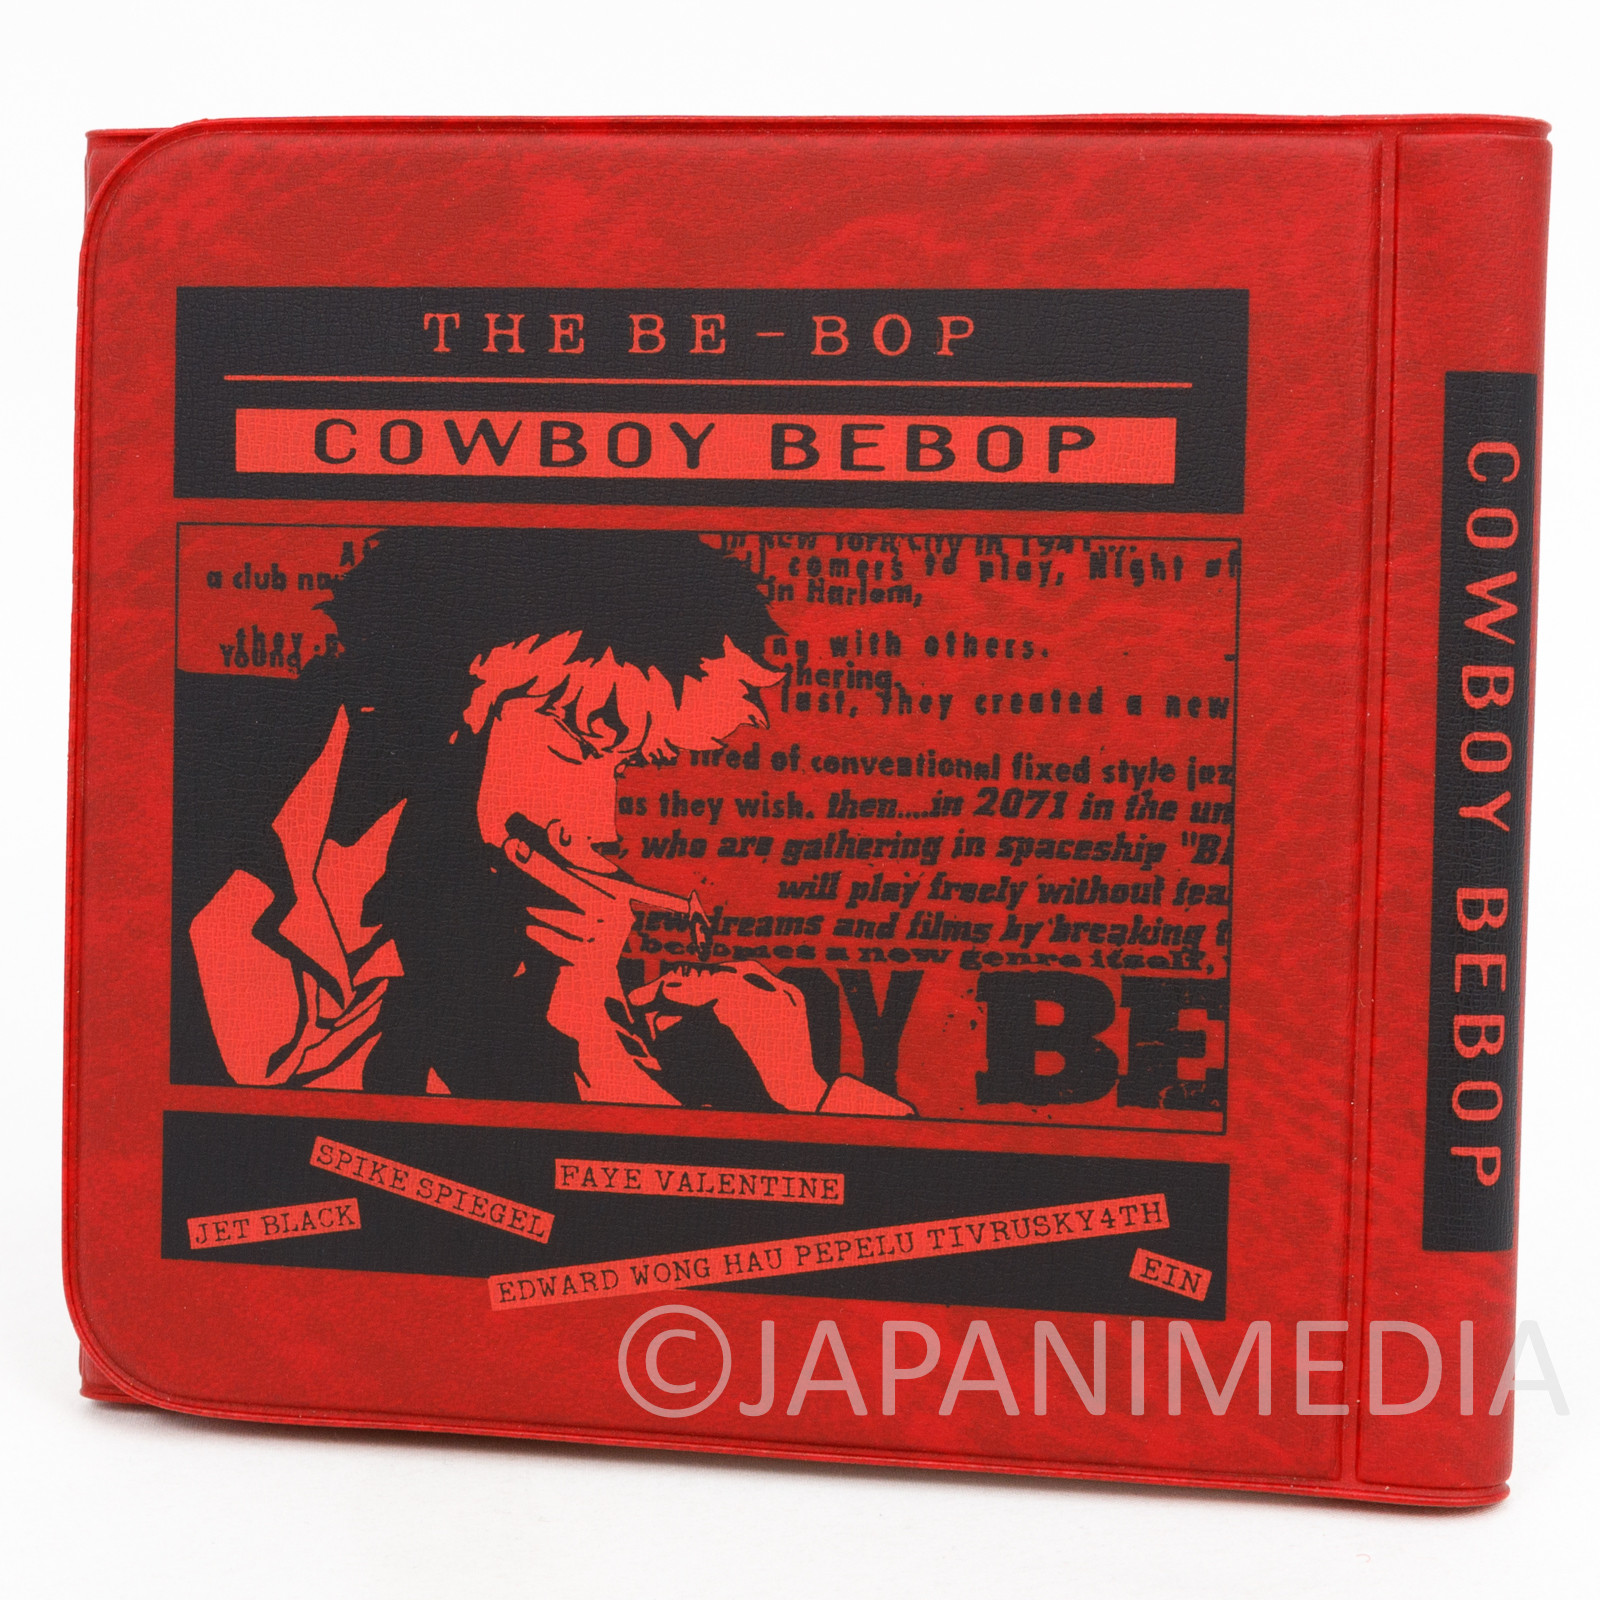 RARE Cowboy Bebop CD Disc Carrying Case JAPAN ANIME